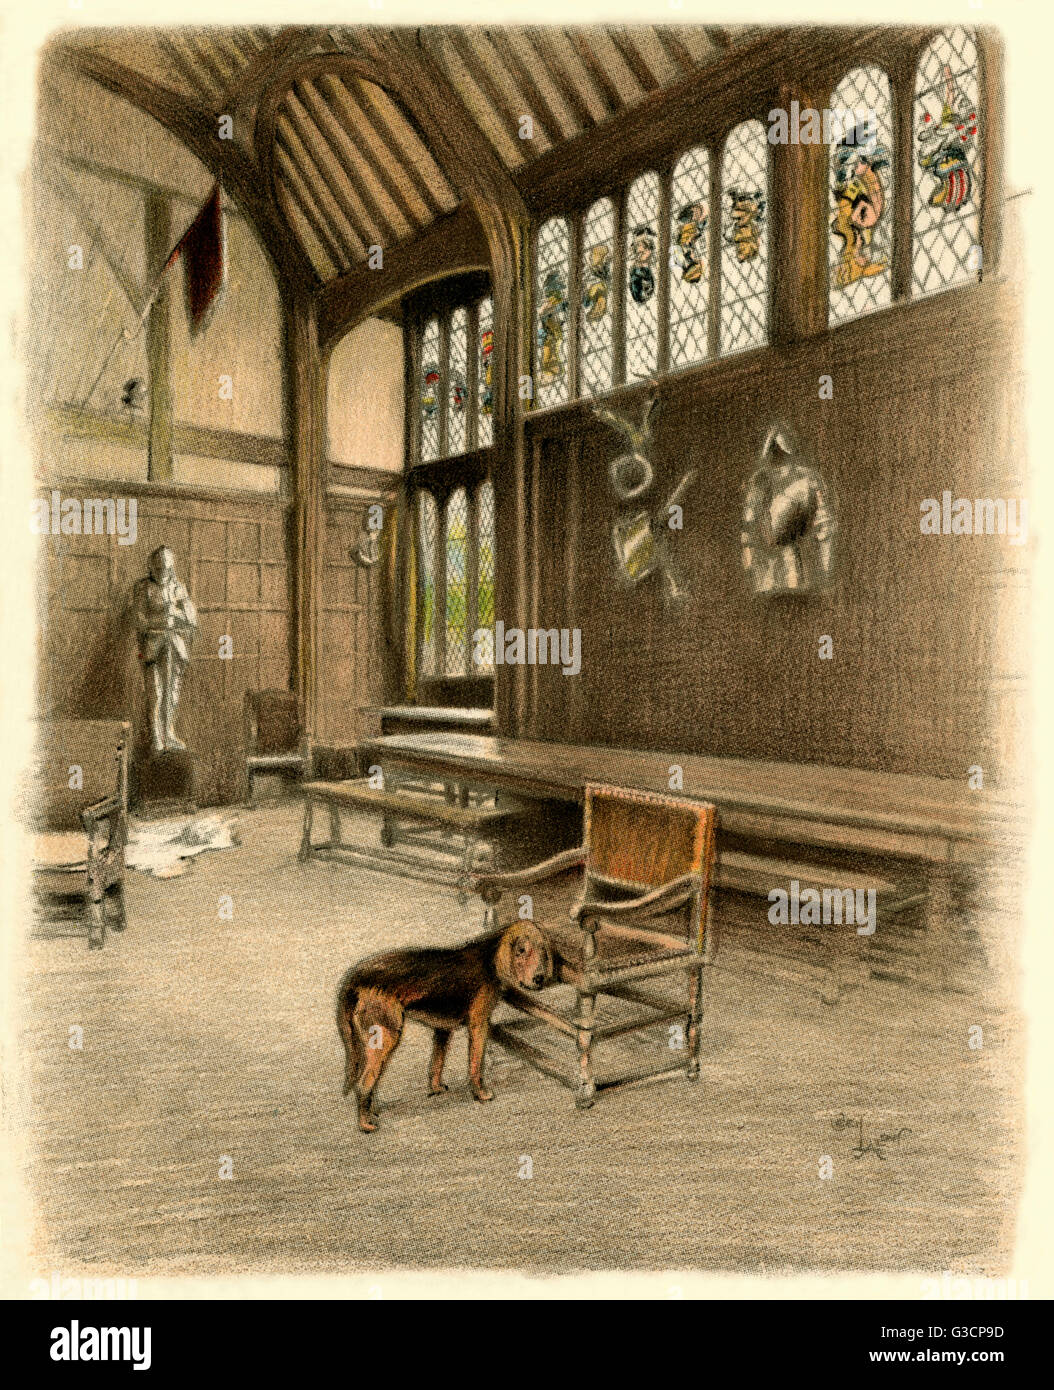 Illustration By Cecil Aldin, Old Manor Houses    Ockwells Manor House, A  15th Century Timber Framed Manor House Near Maidenhead, Berkshire.